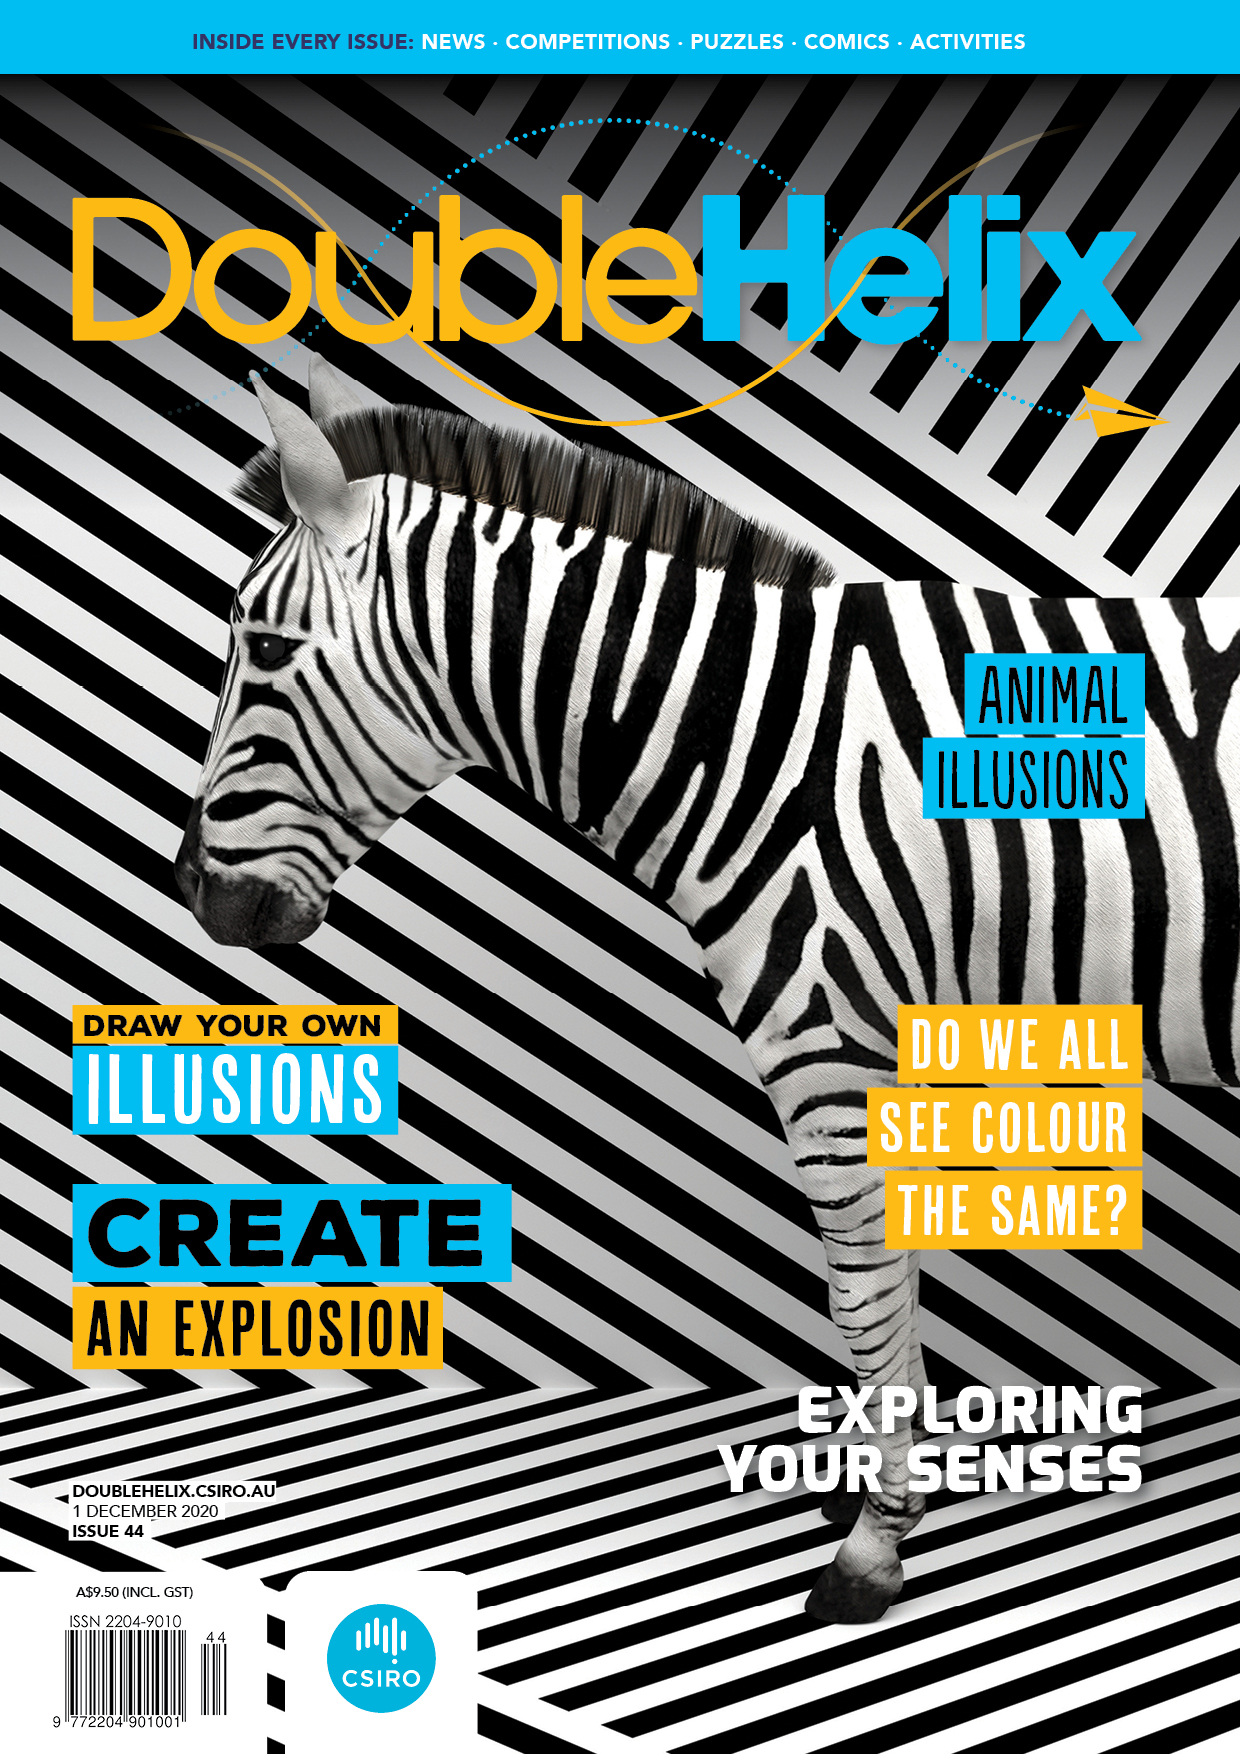 Cover of Double Helix, issue 44 featuring a photo of a zebra standing in front of a black and white backdrop and floor, creating an optical illusion.